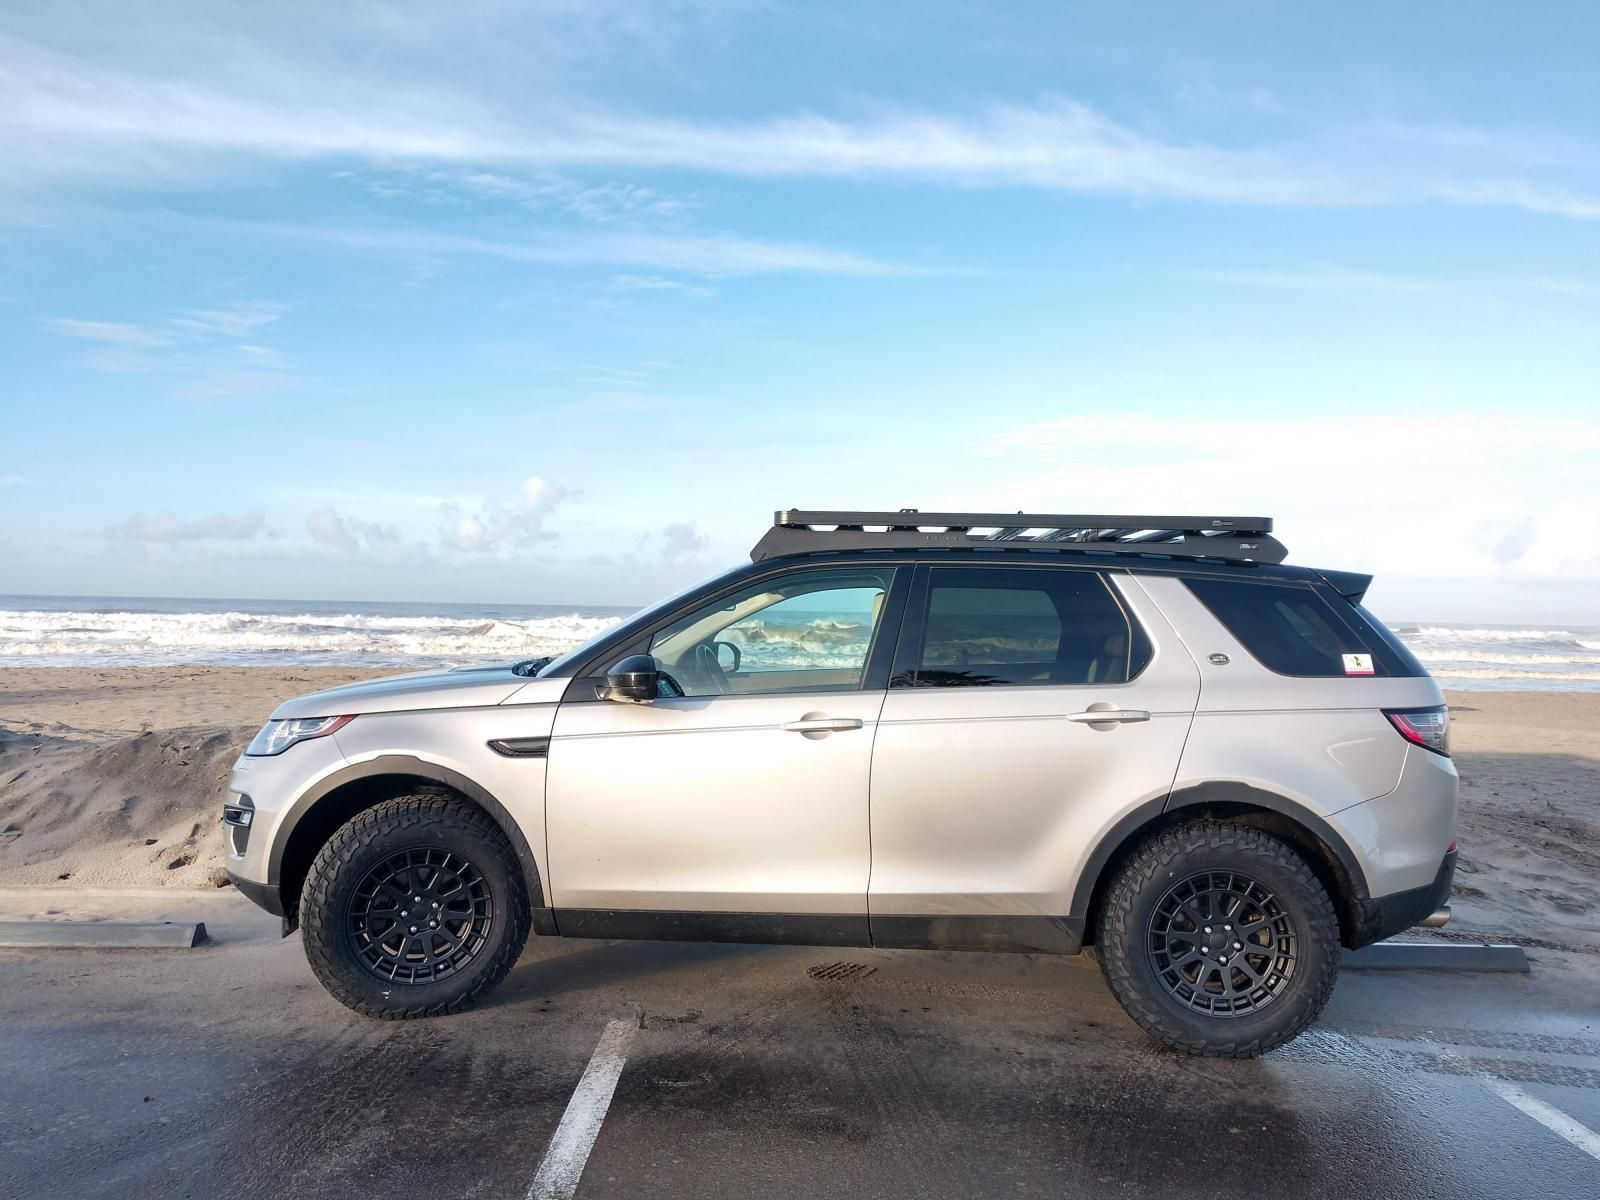 Range Rover Discovery Sport Lifted Bf Tires Google Search Range Rover Discovery Rover Discovery Land Rover Discovery